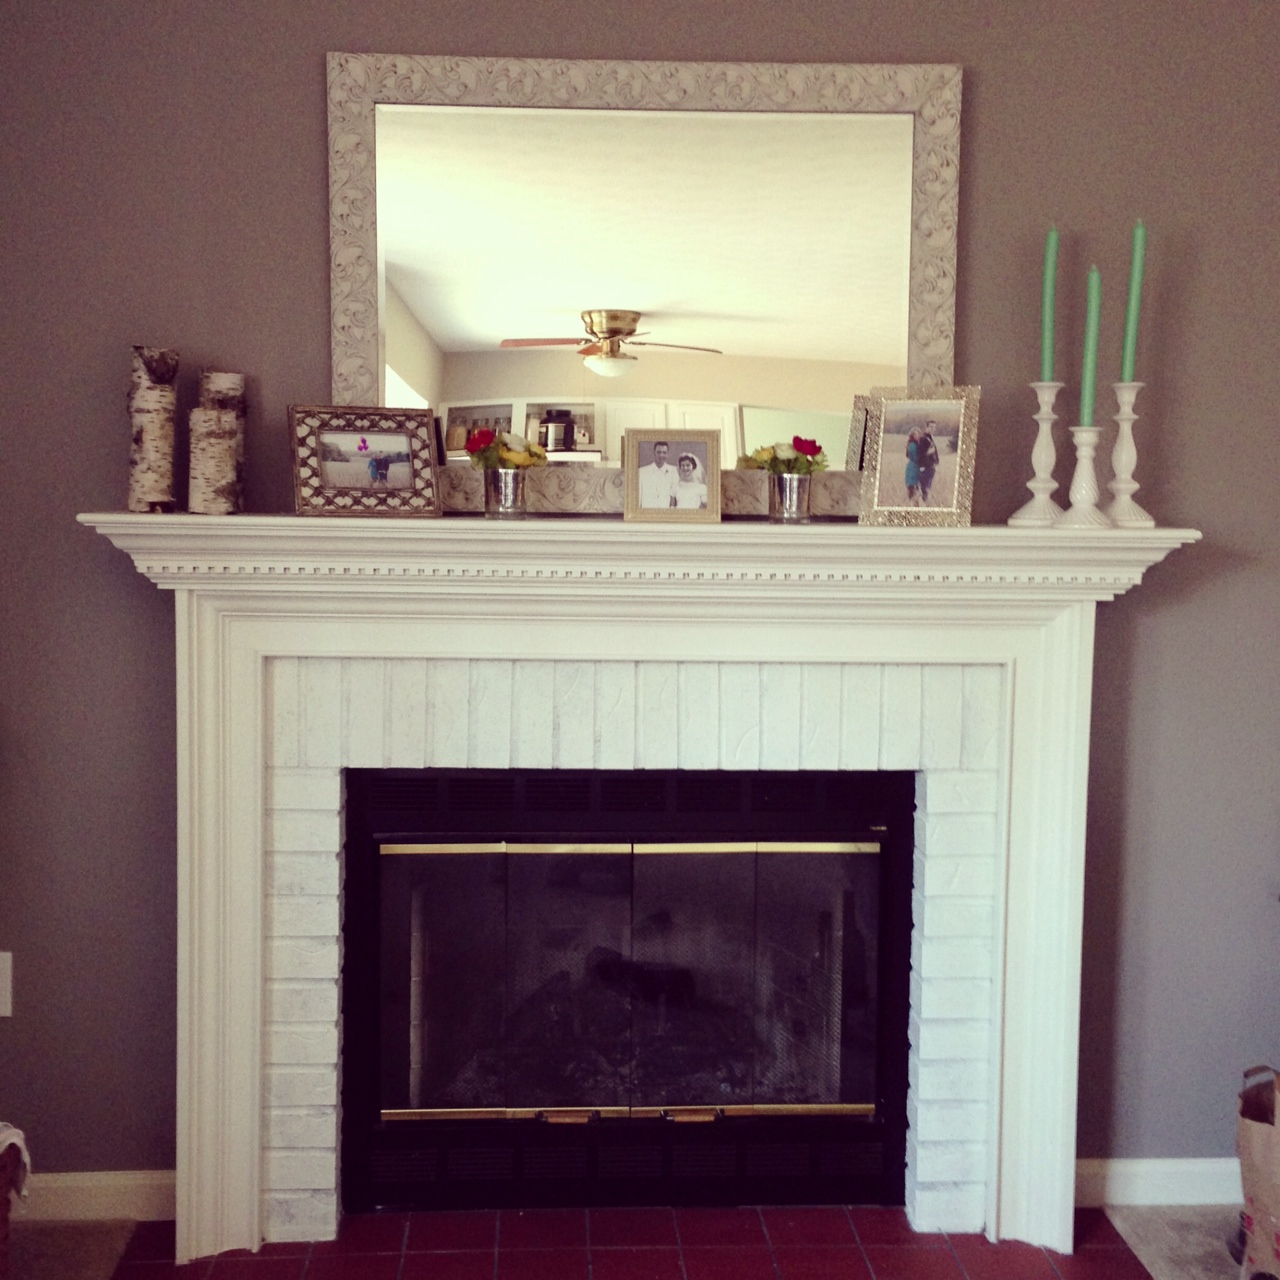 Fireplace Hearth: Chic Meets Healthy: FIREPLACE HEARTH PT. 1